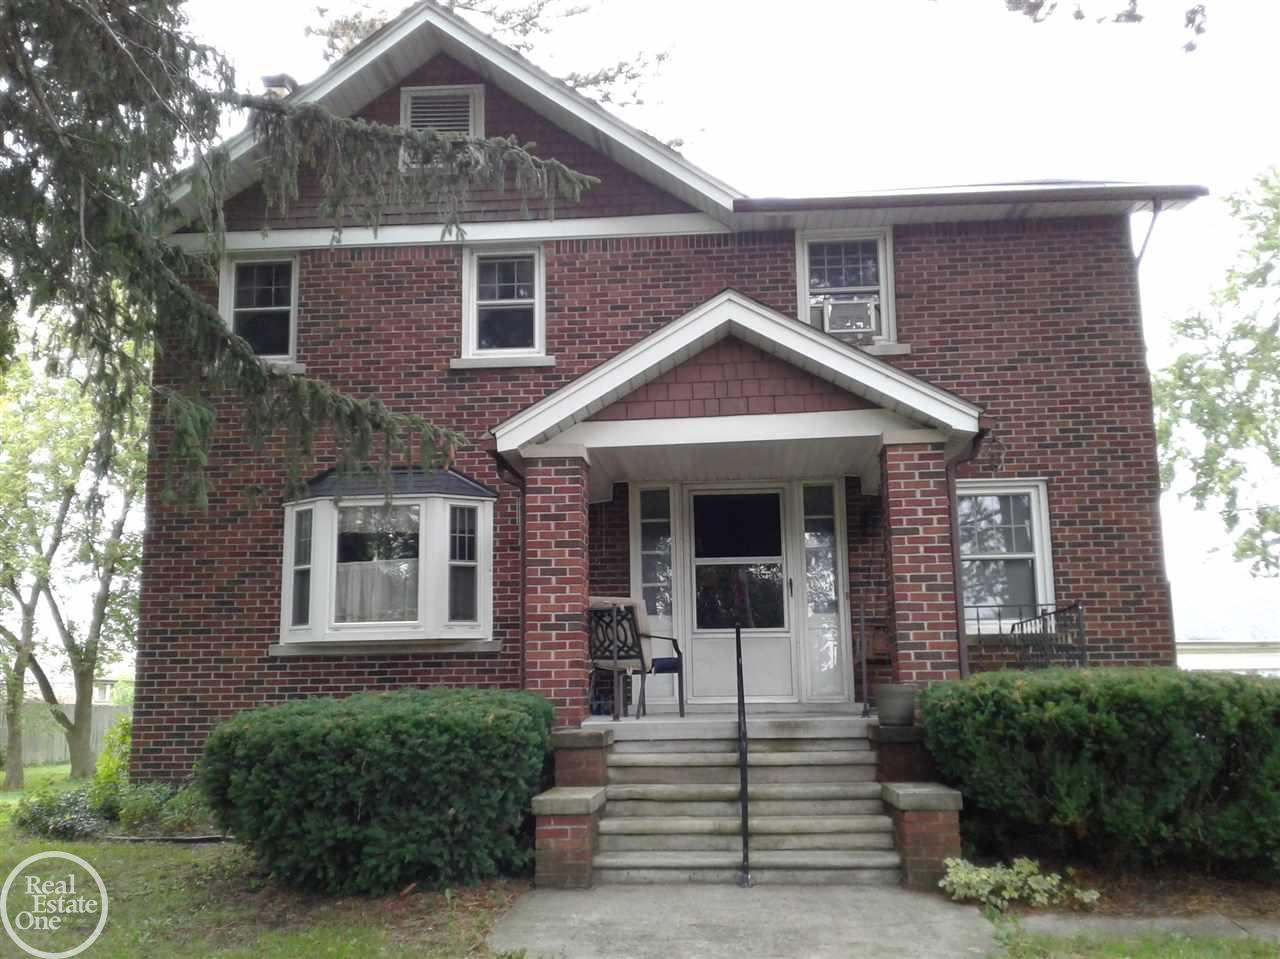 Nice large home that needs some TLC, sold as is, seller to do no repairs. Home has lots or offer and has the old world charm, Hard wood floors, Large bed rooms, Dining room, Living room Tons of storage . Great home for a large family. Buyer and agent to verify all data, room sizes are approx.